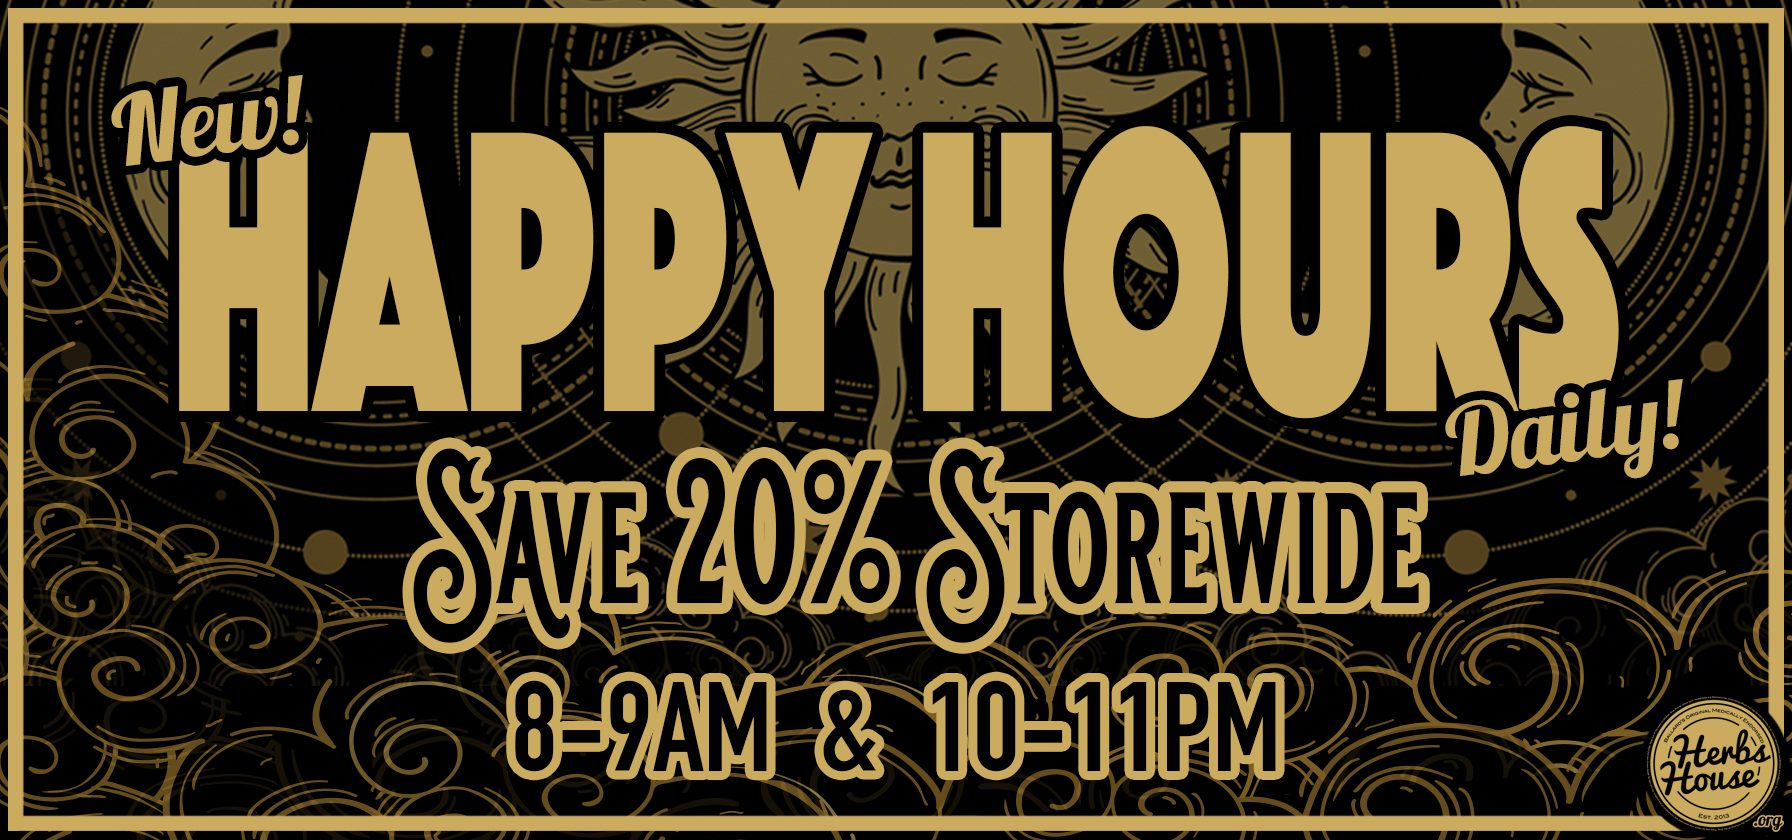 SAVE 20% Happy Hours at Herbs House 8-9am and 10-11pm Daily